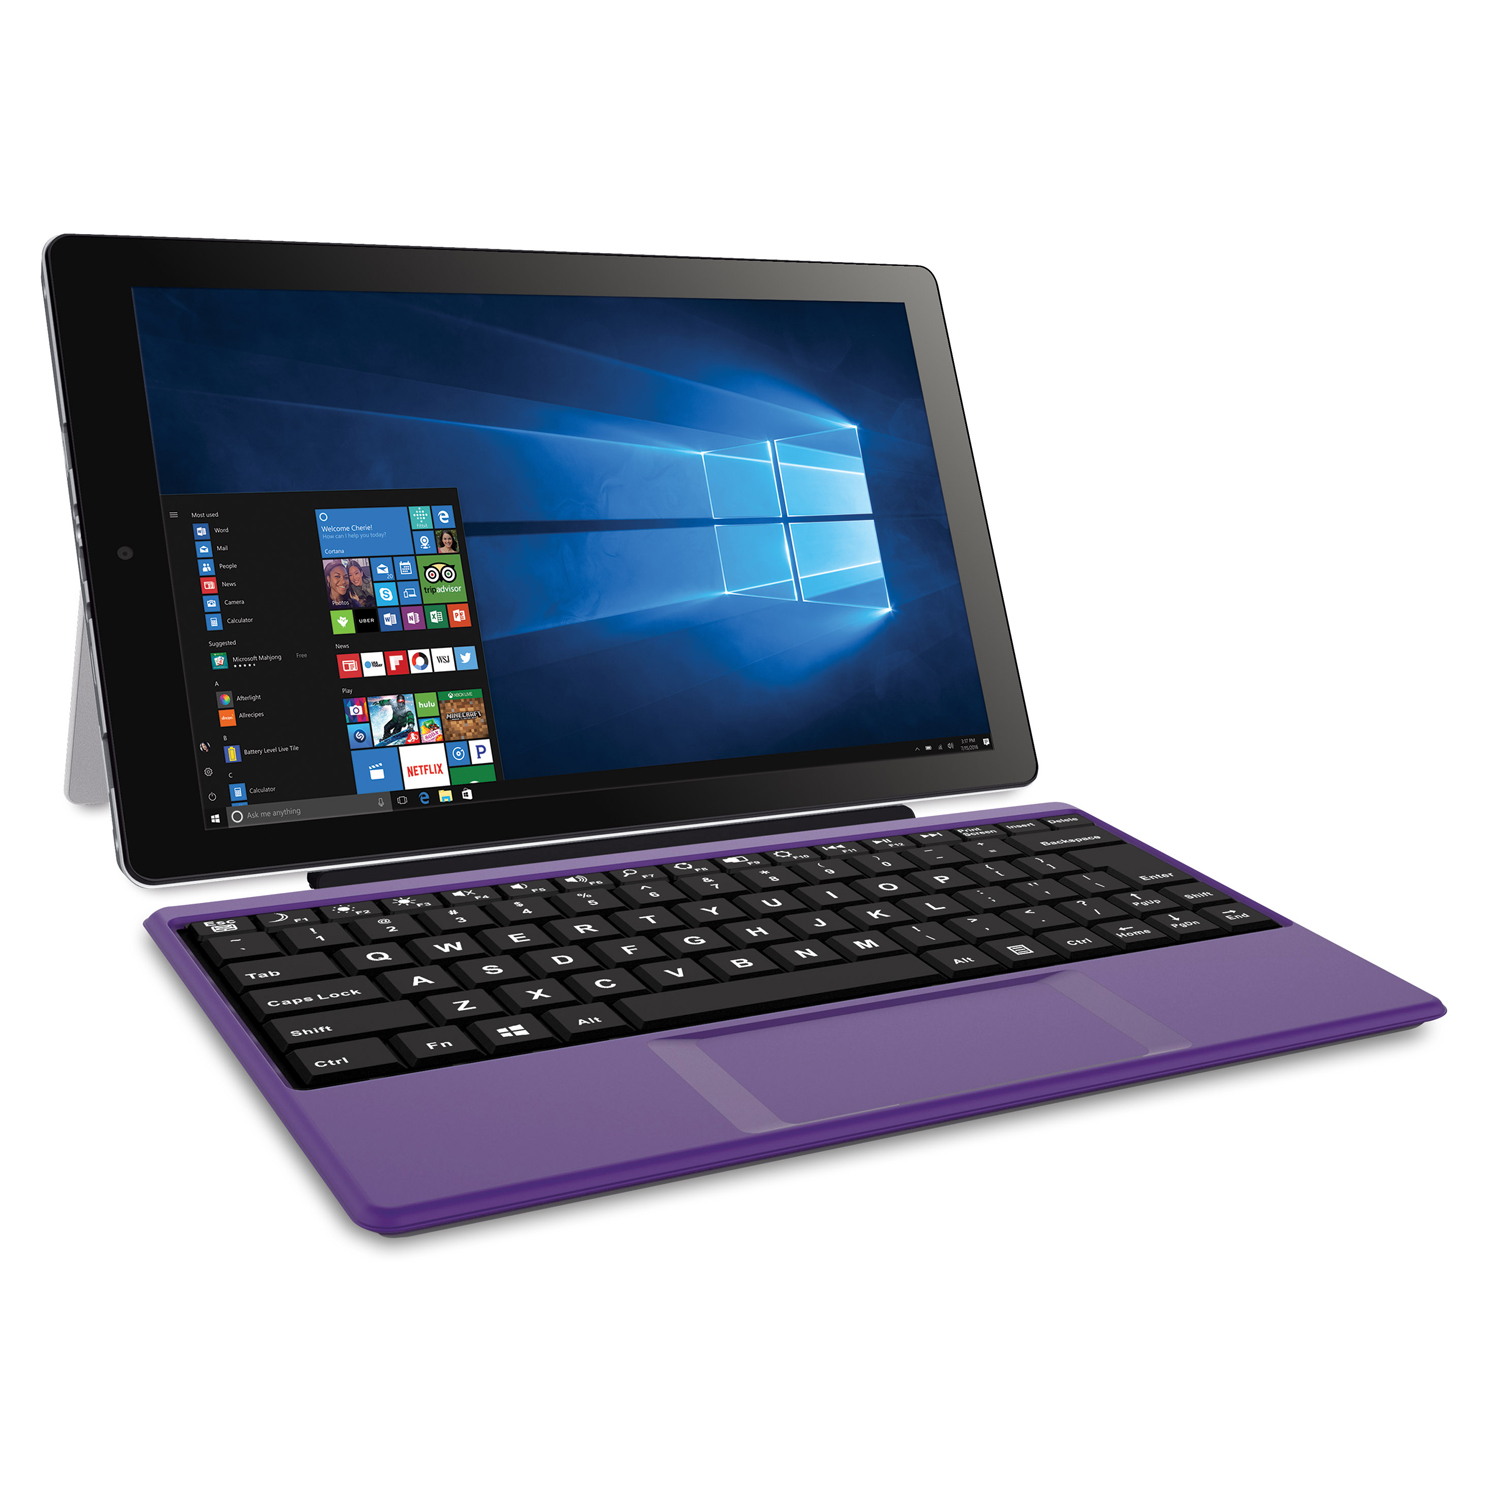 "RCA Cambio 10.1"" 2 in 1 32GB Tablet with Windows 10, Intel Atom Z8350 2GB RAM, Includes Keyboard"